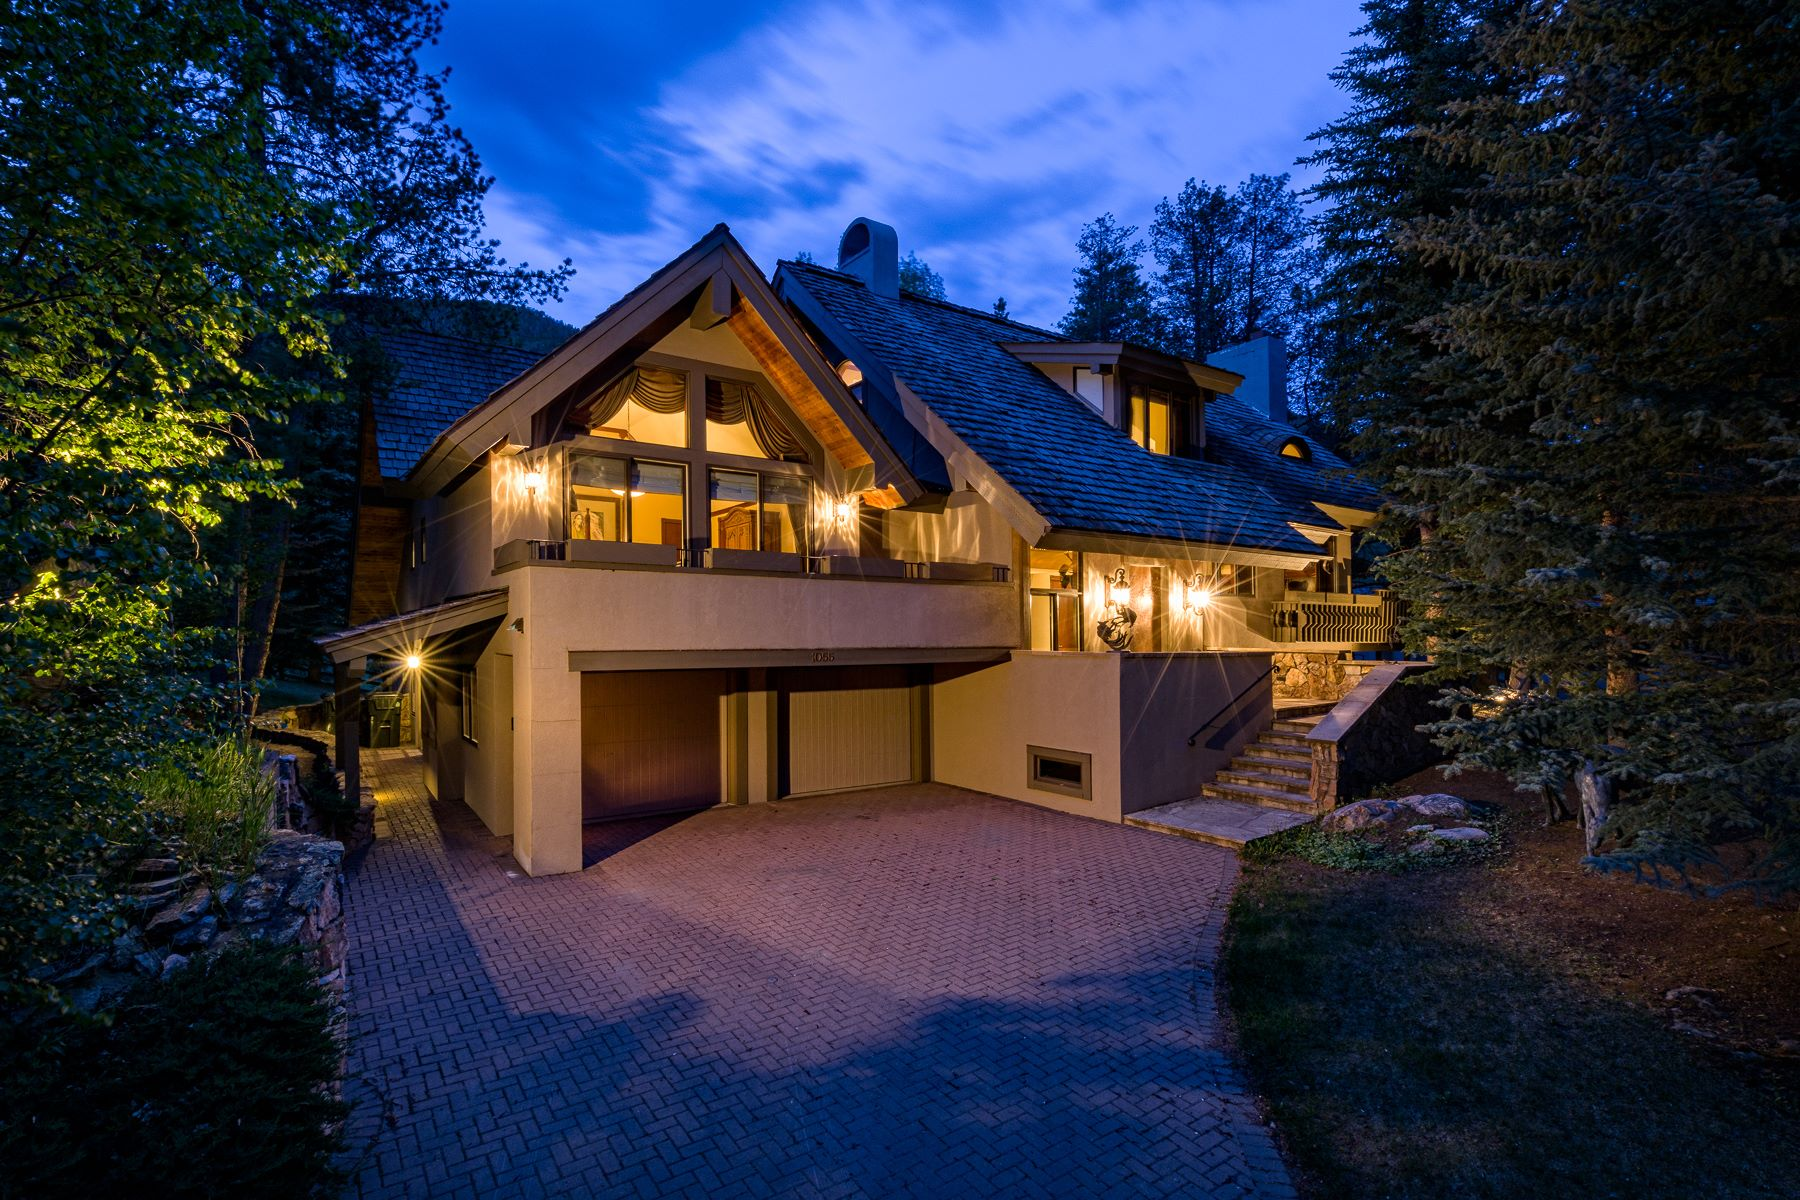 Single Family Home for Active at 1055 Homestake Circle Vail, Colorado 81657 United States